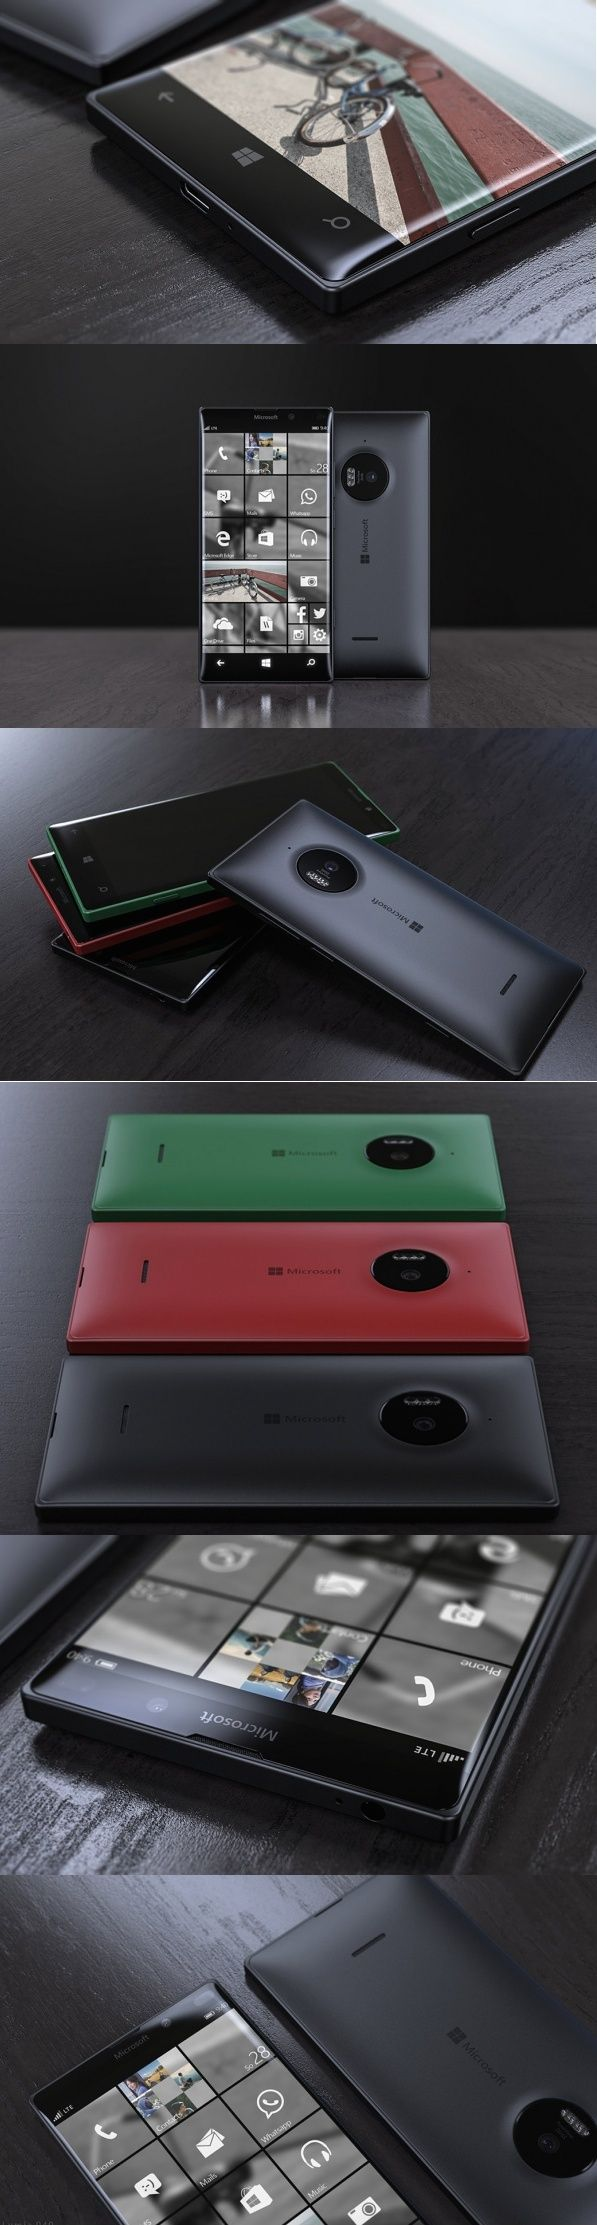 Based on rumors and speculation floating around about #Microsoft's much anticipated #Lumia 940 and Lumia 940 XL, Jonas Daehnert's vision for the smartphone is a softer alternative to the original square designs with curved, cushion-like front and back sides. #Yankodesign #Technology